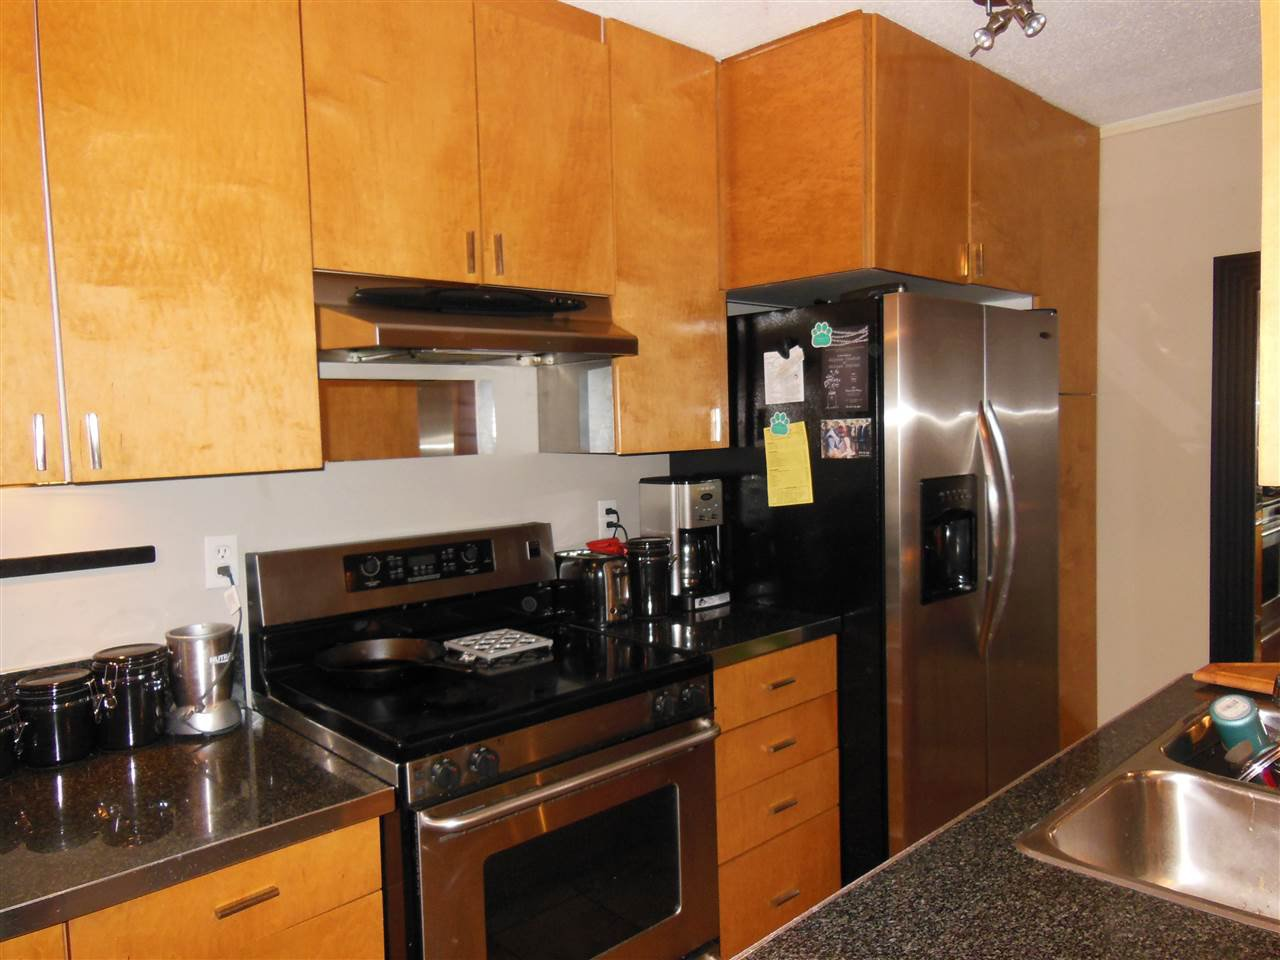 """Main Photo: 106 170 E 3RD Street in North Vancouver: Lower Lonsdale Condo for sale in """"Bristol Court"""" : MLS®# R2078639"""